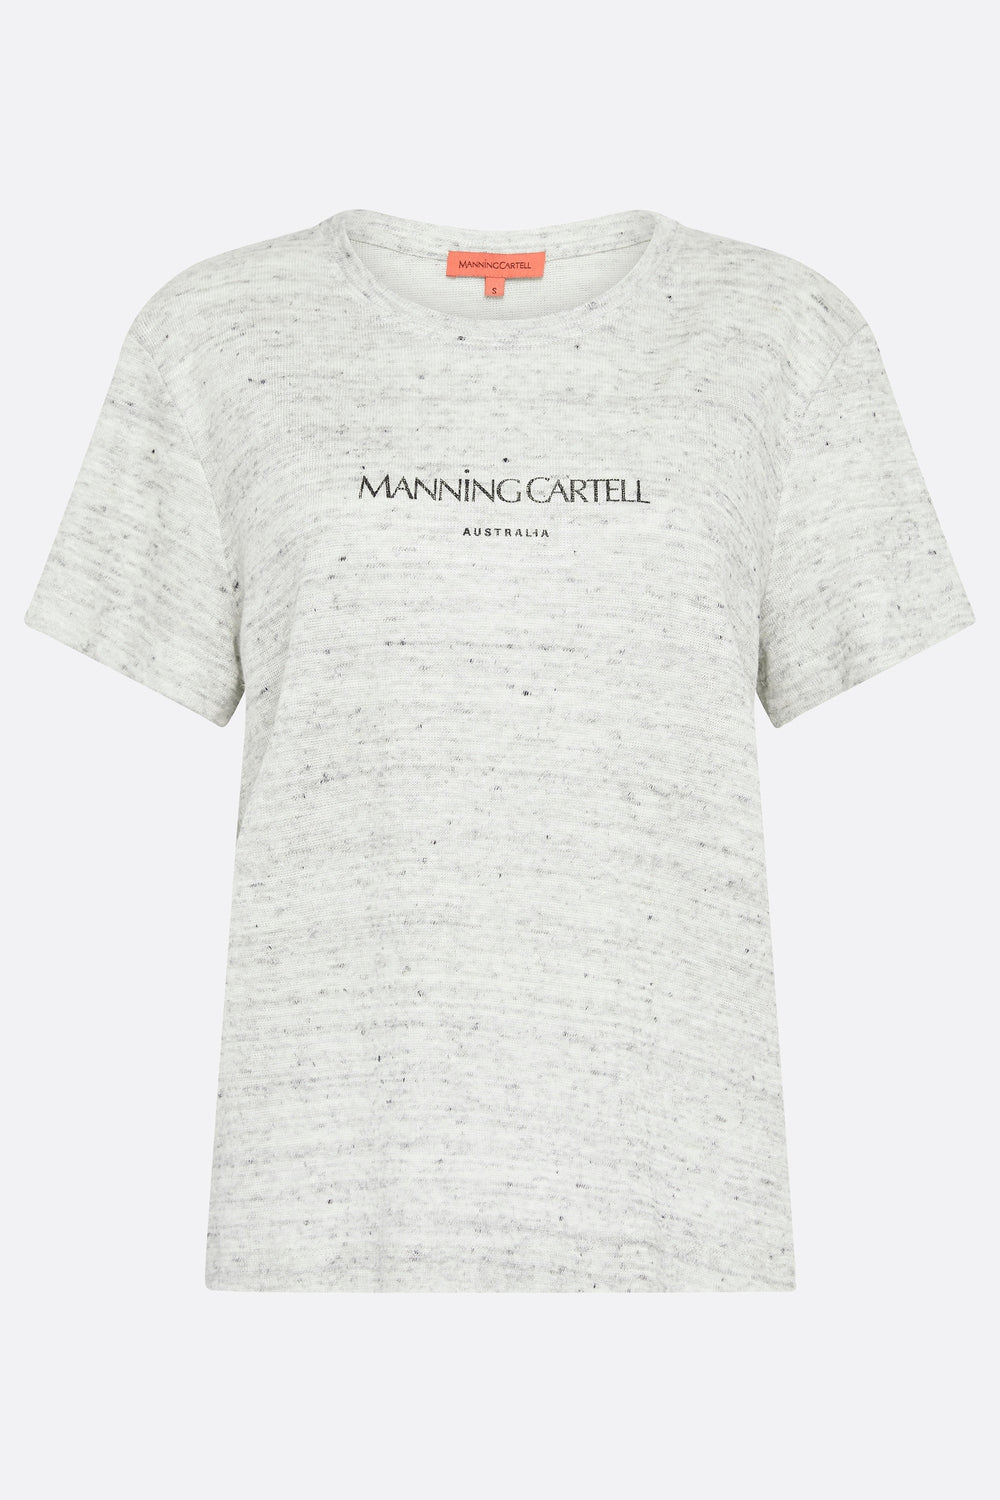 MC AUSTRALIA GREY MARLE T-SHIRT